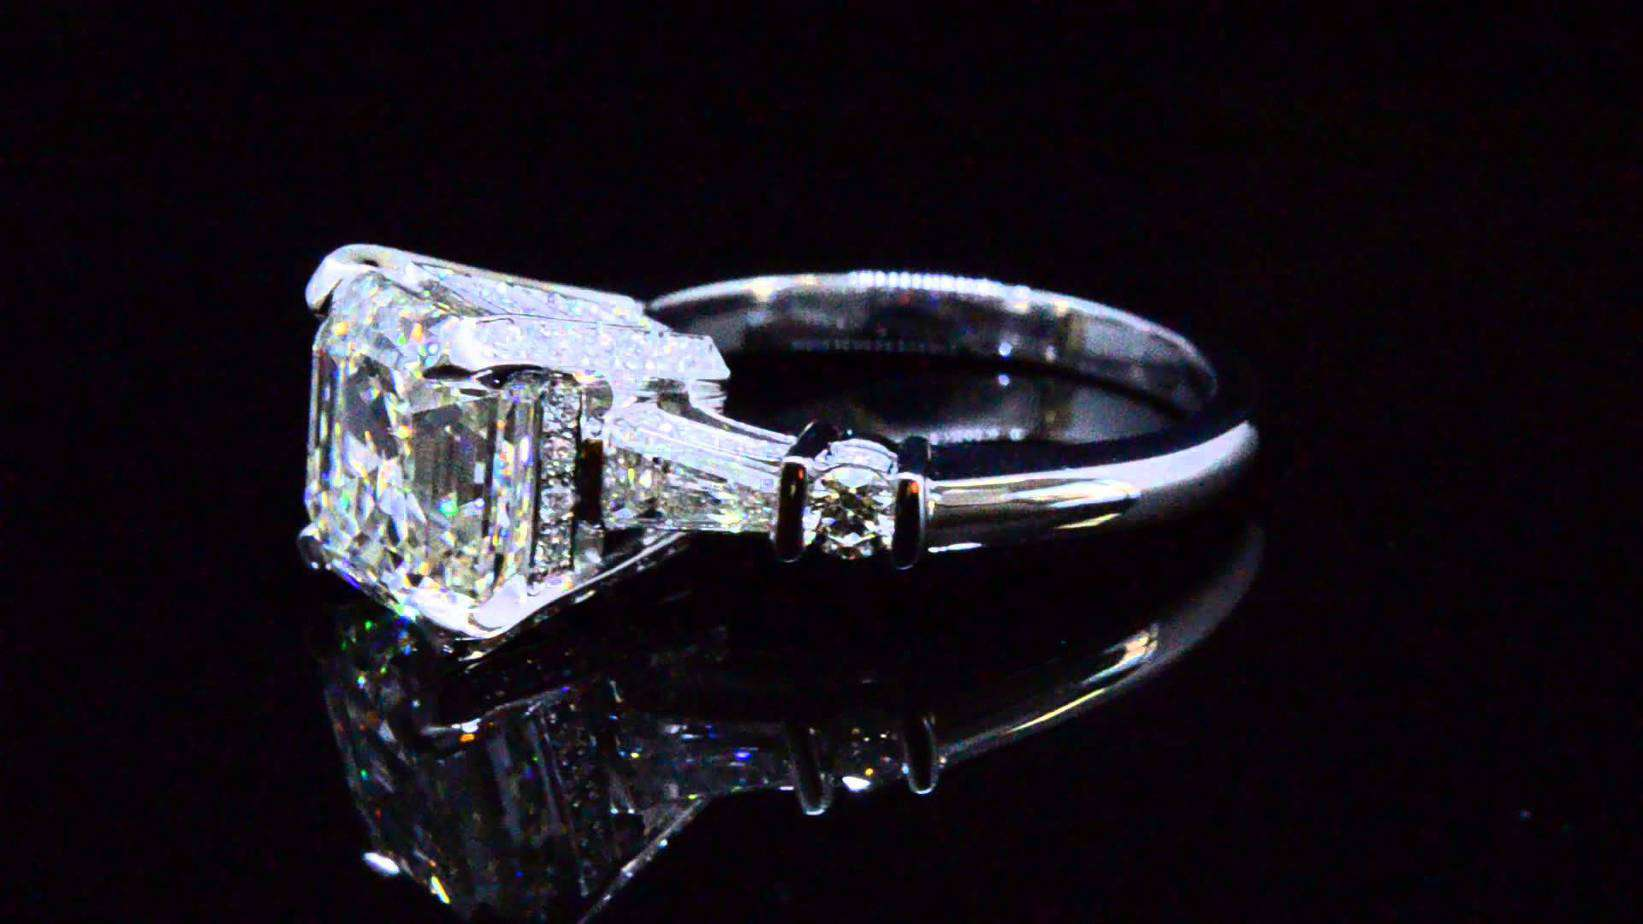 diamond jaffe seasons ring of asscher c house product center women by gold cut a alexis love with studded s asher white